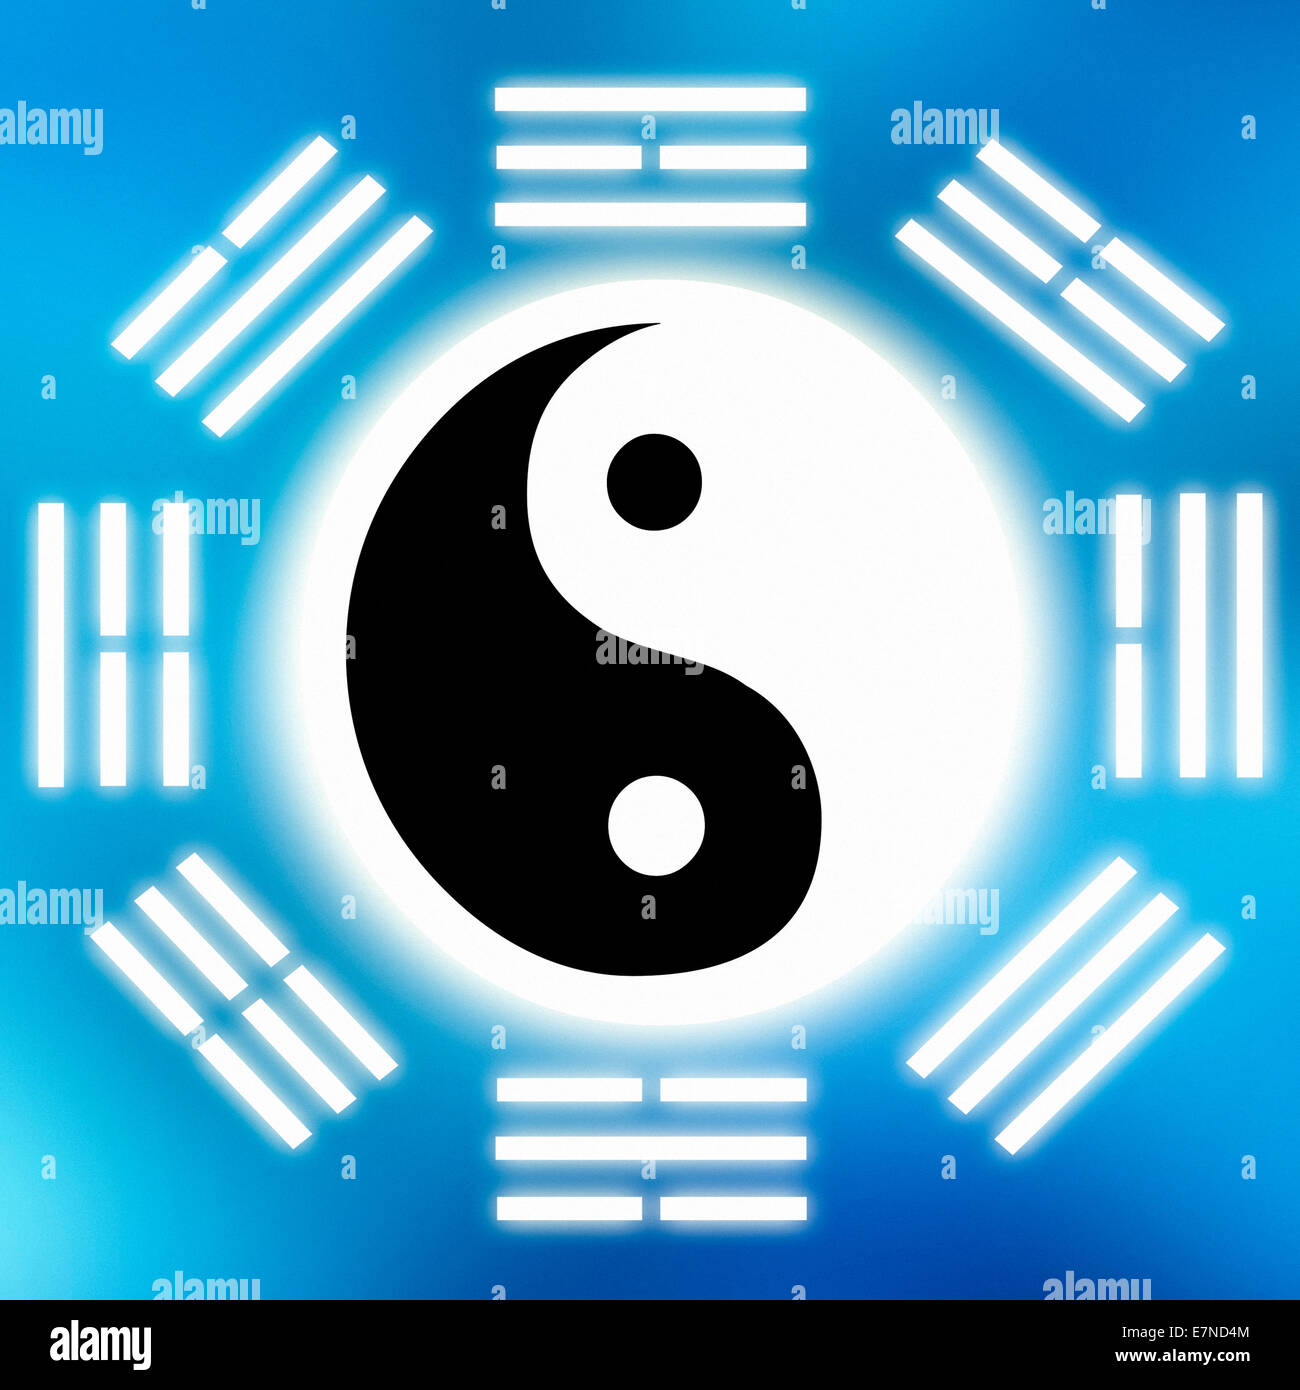 Yin Yang Symbols Stock Photos Yin Yang Symbols Stock Images Alamy